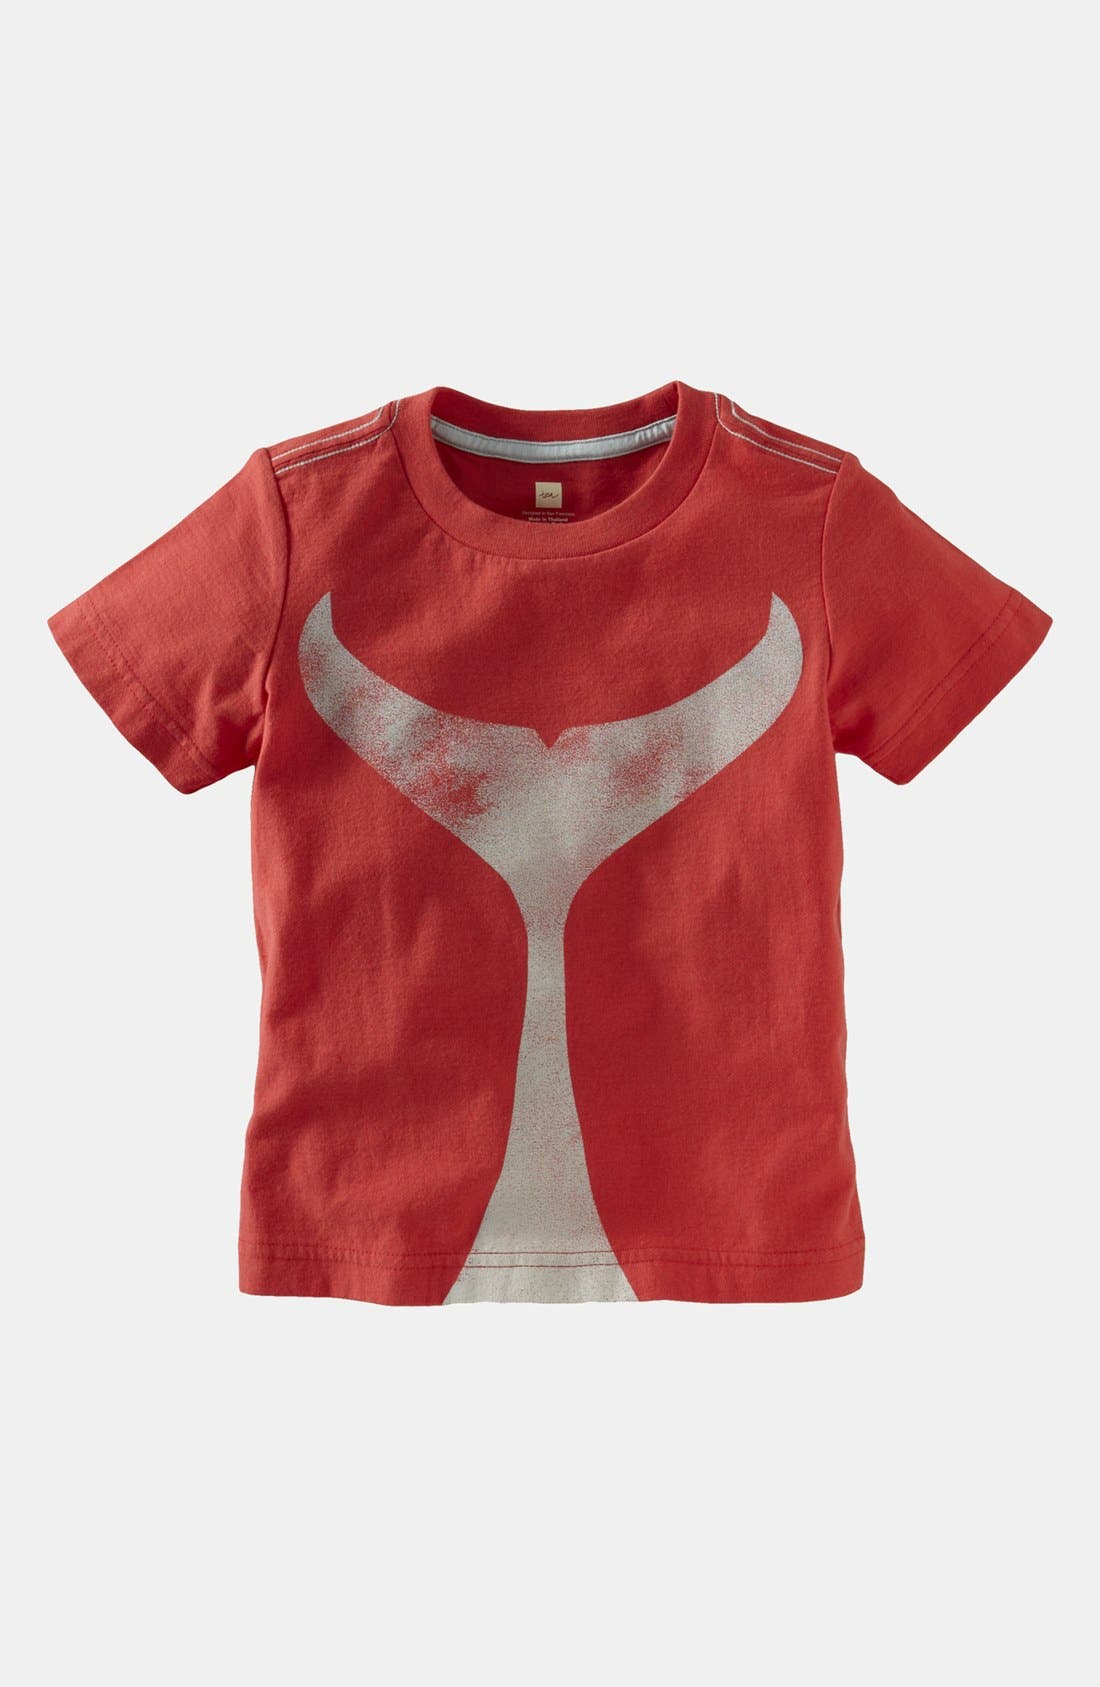 Main Image - Tea Collection 'Whale' T-Shirt (Toddler)